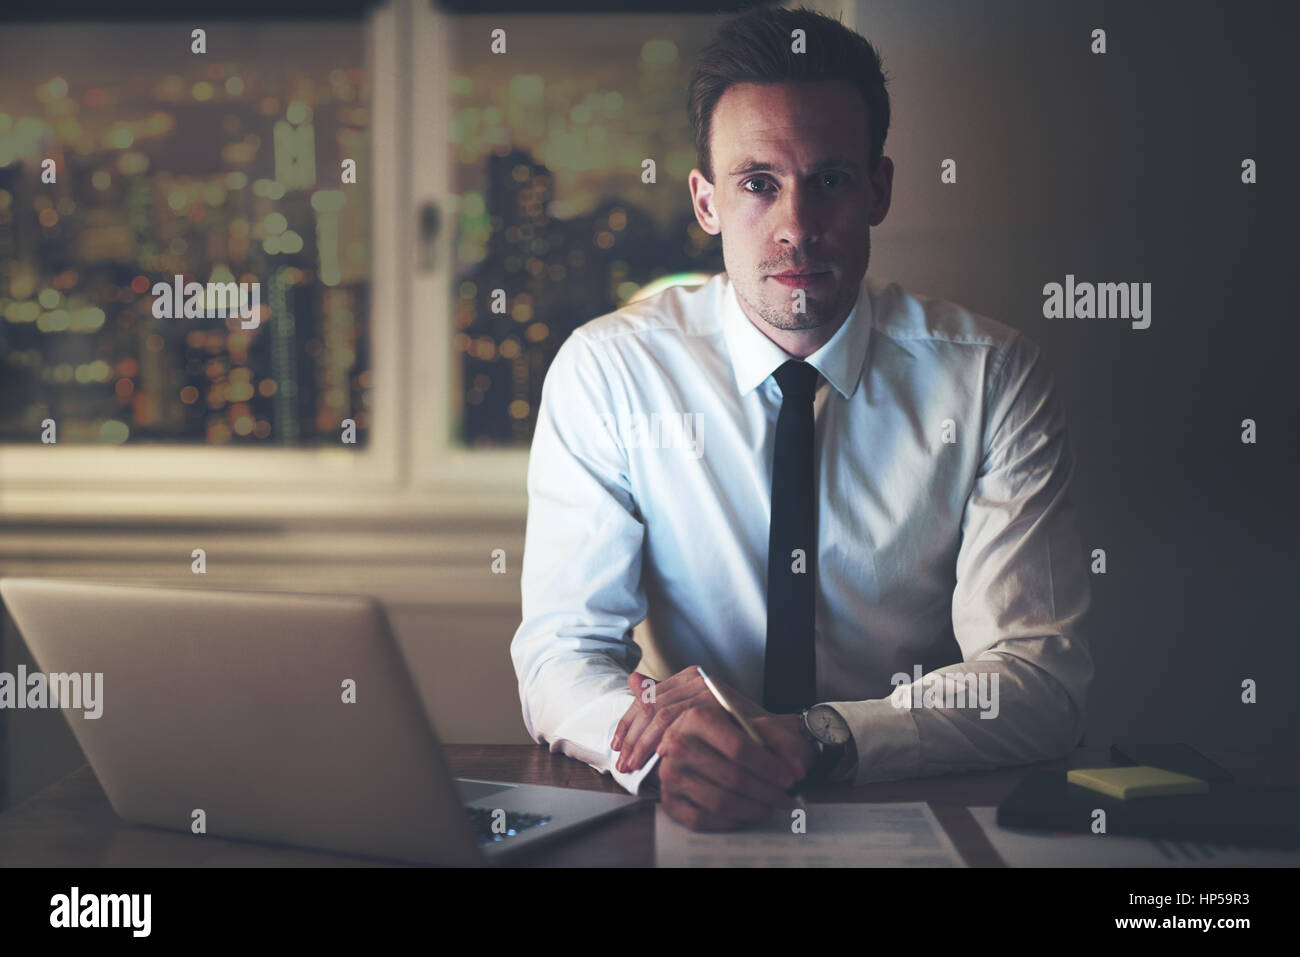 Serious businessman at office sitting at desk working, looking into camera, Classic business concept - Stock Image